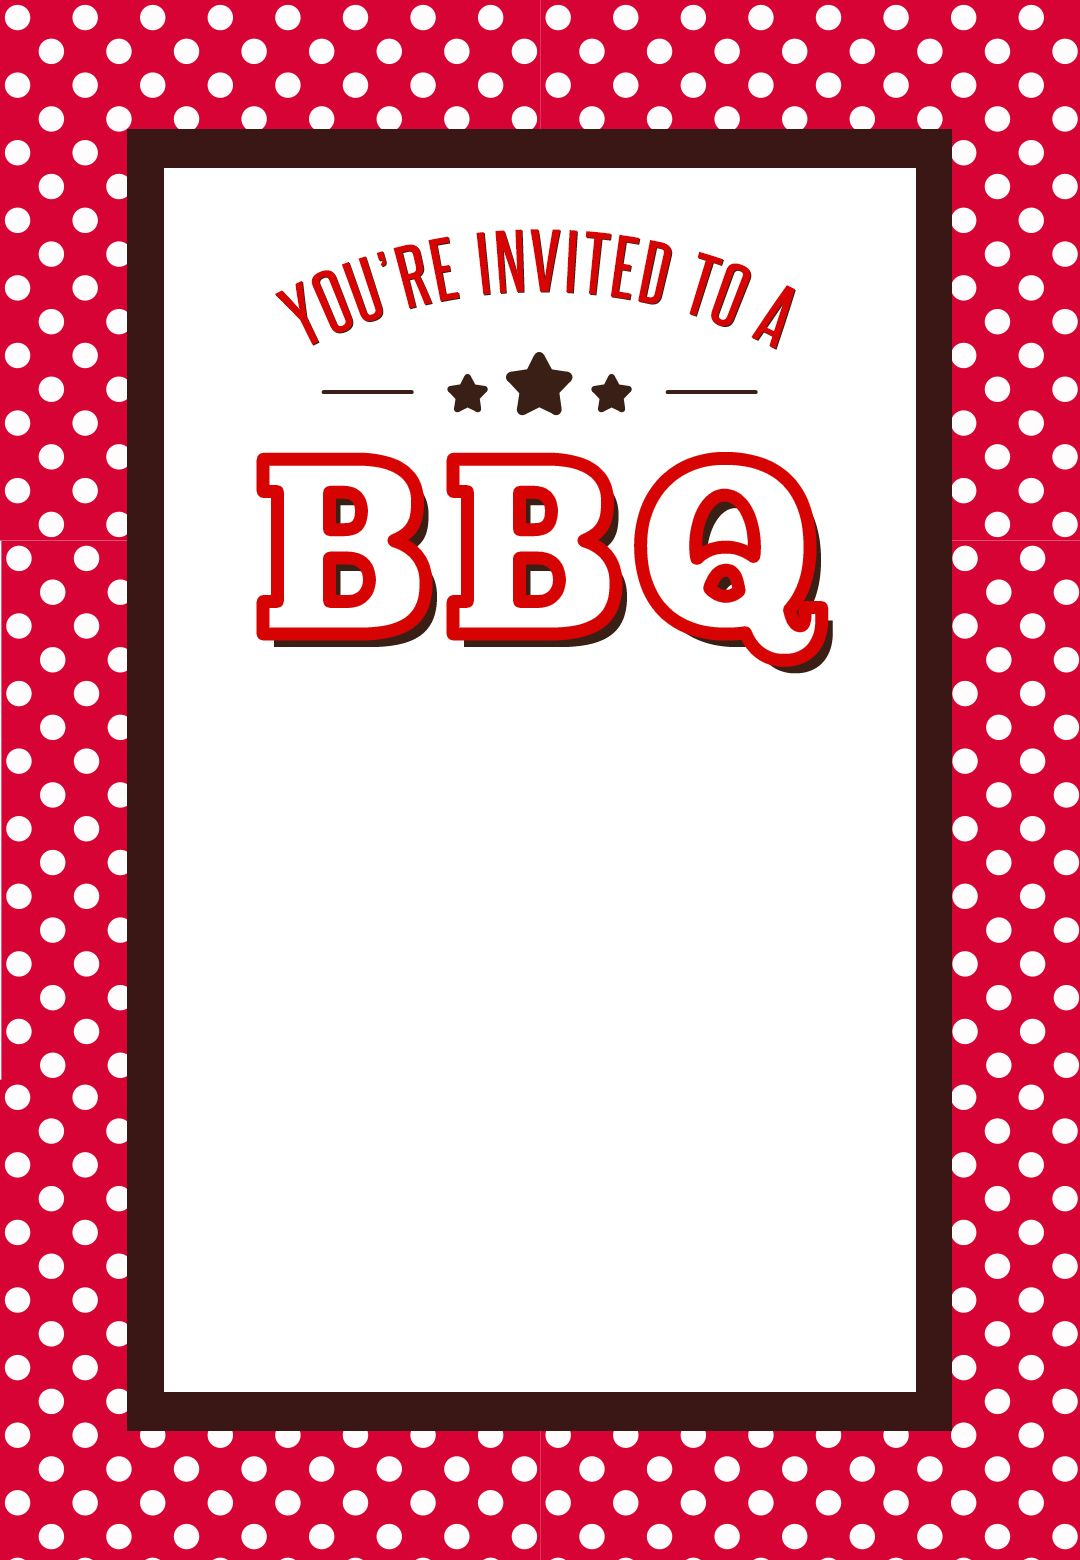 Bbq Invitation Template | A Bbq Free Printable Bbq Party Invitation Template Greetings